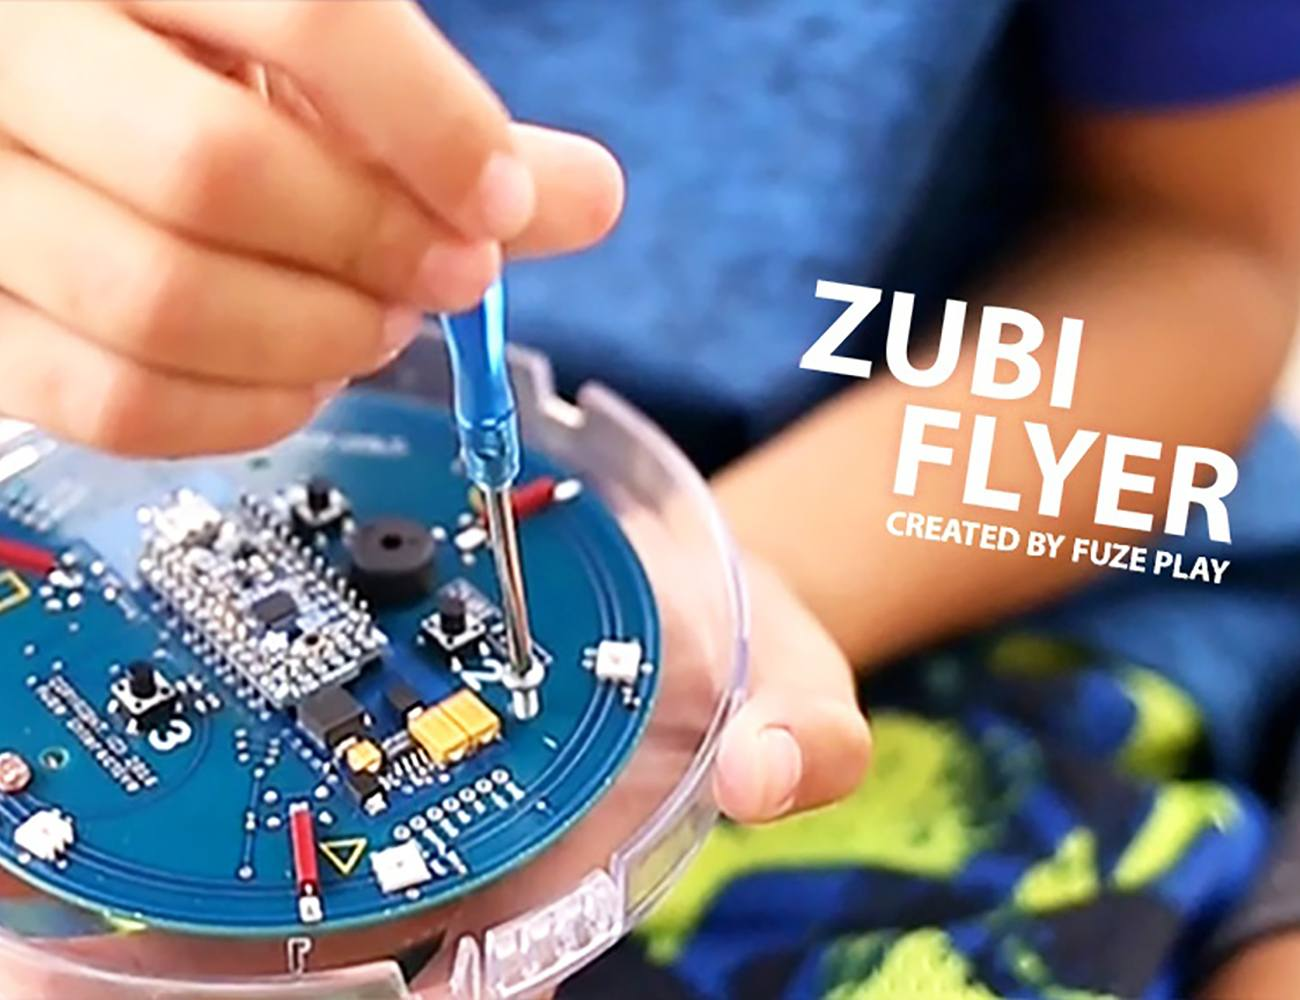 Zubi+Flyer+%26%238211%3B+The+First+Hackable+Frisbee+Is+Ready+To+Go